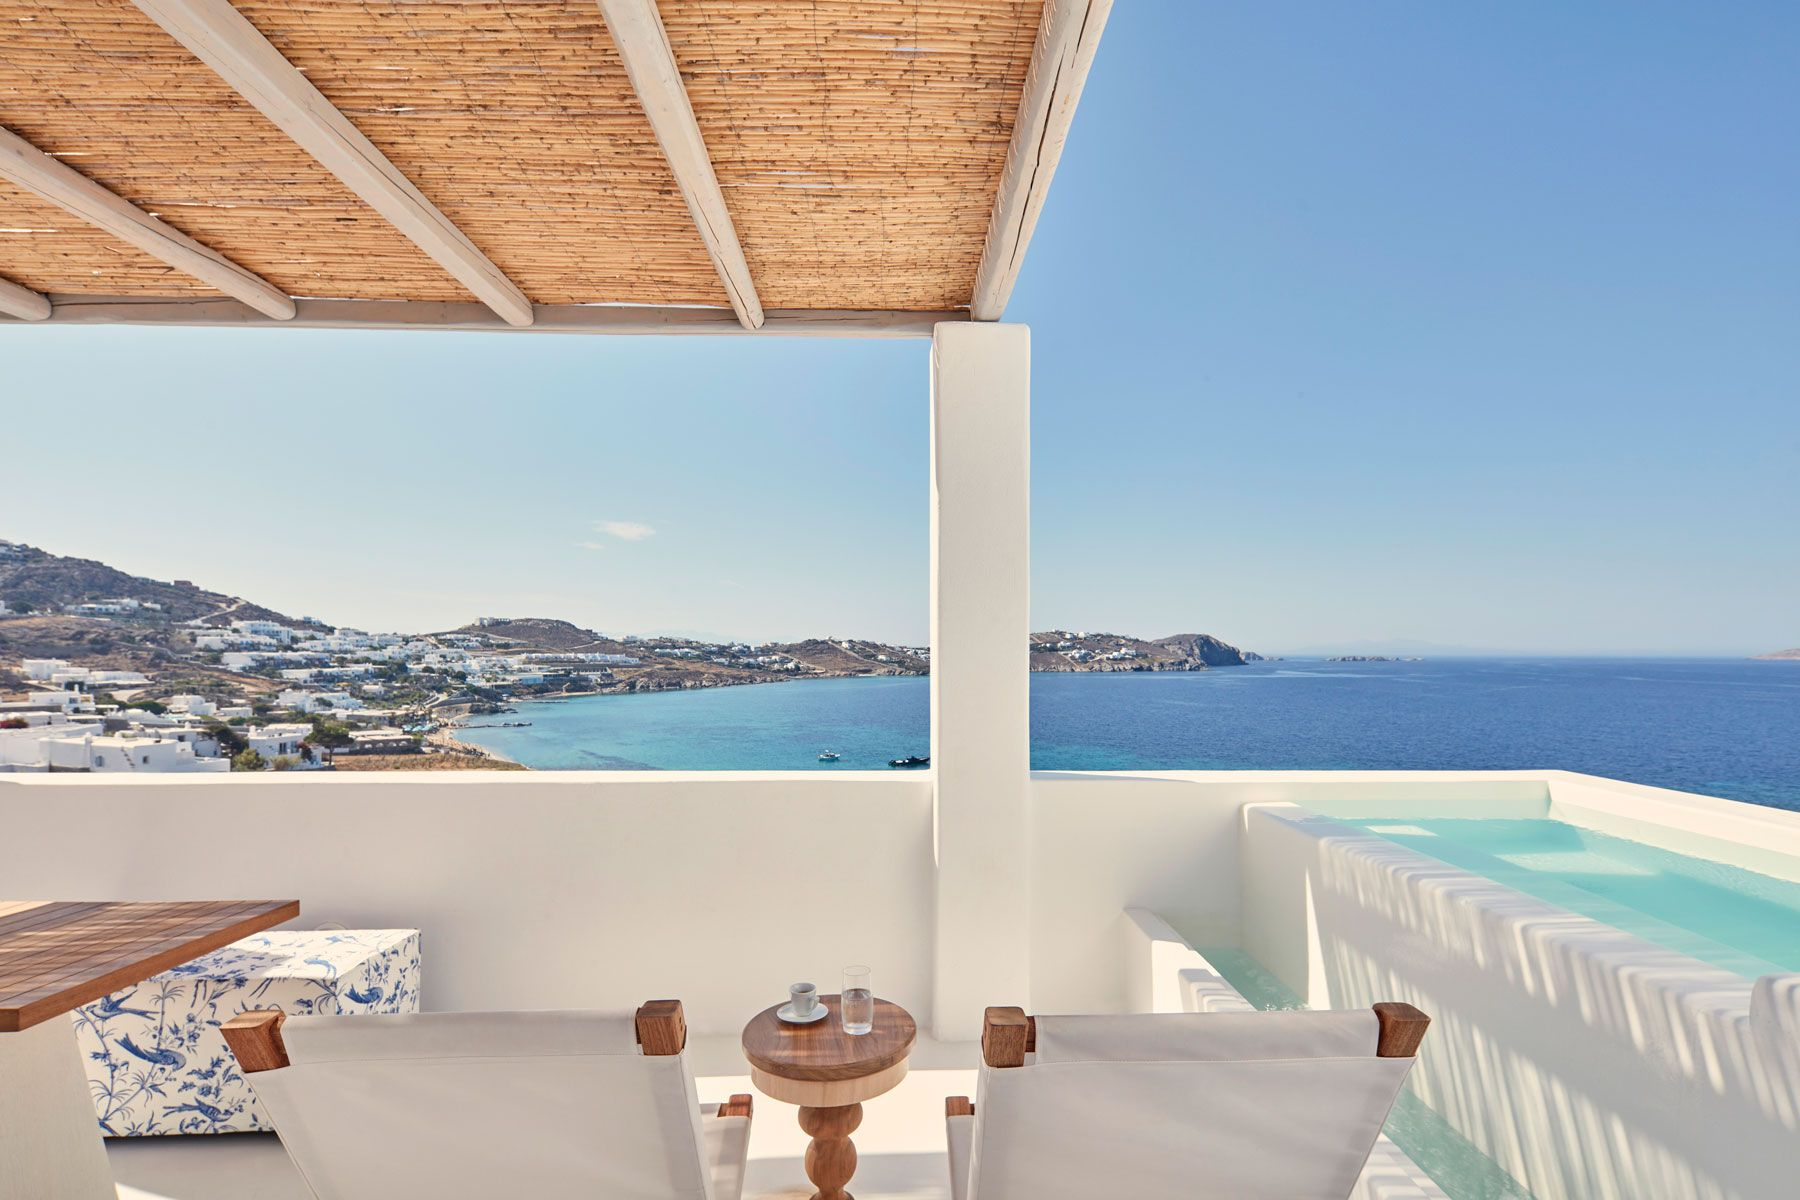 Top 10 Greece Resort Hotels   Greece resorts, Travel and leisure ...